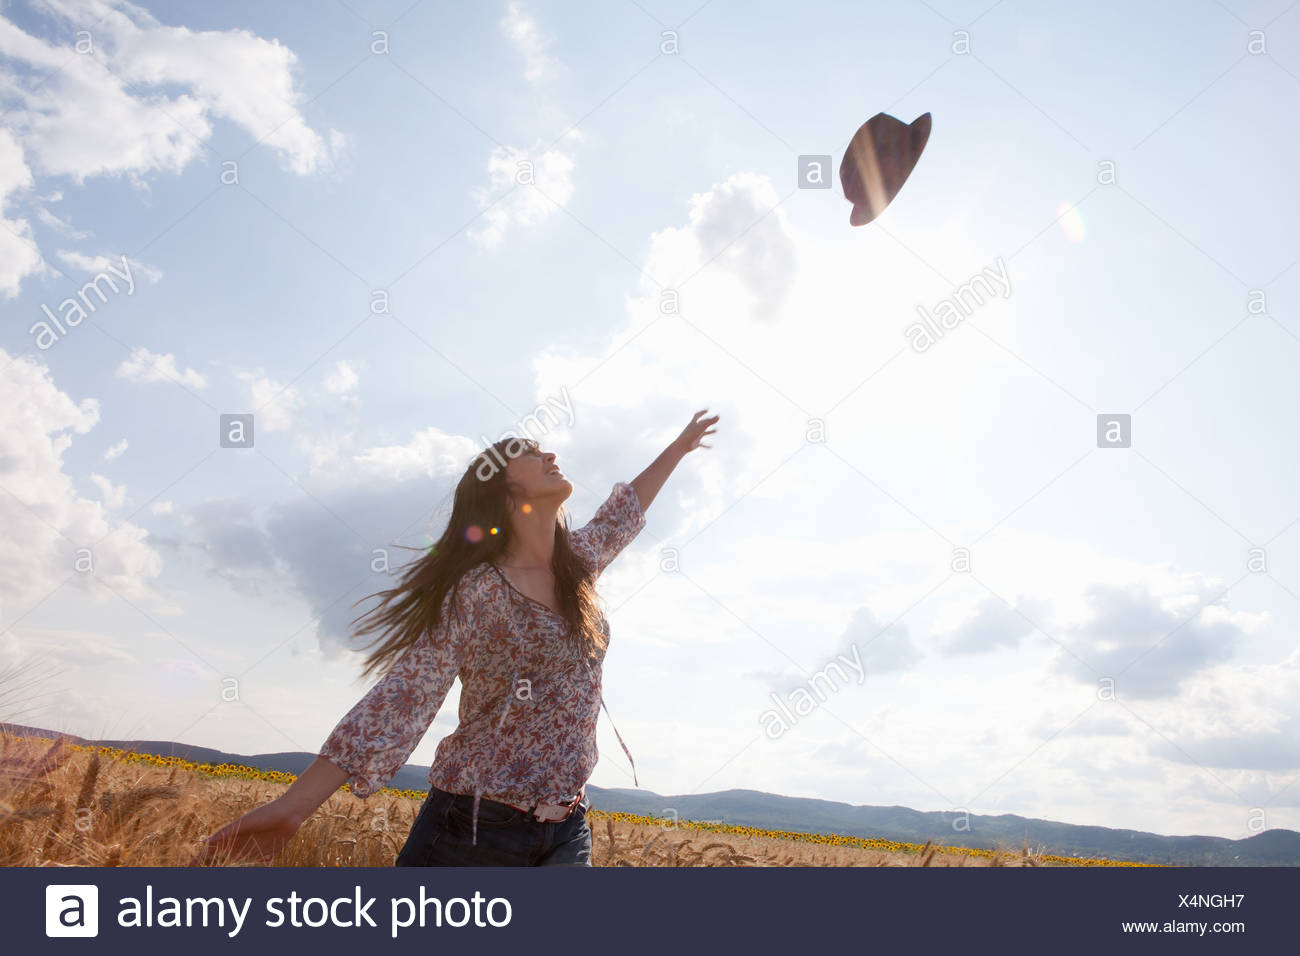 Mid adult woman throwing hat in air - Stock Image